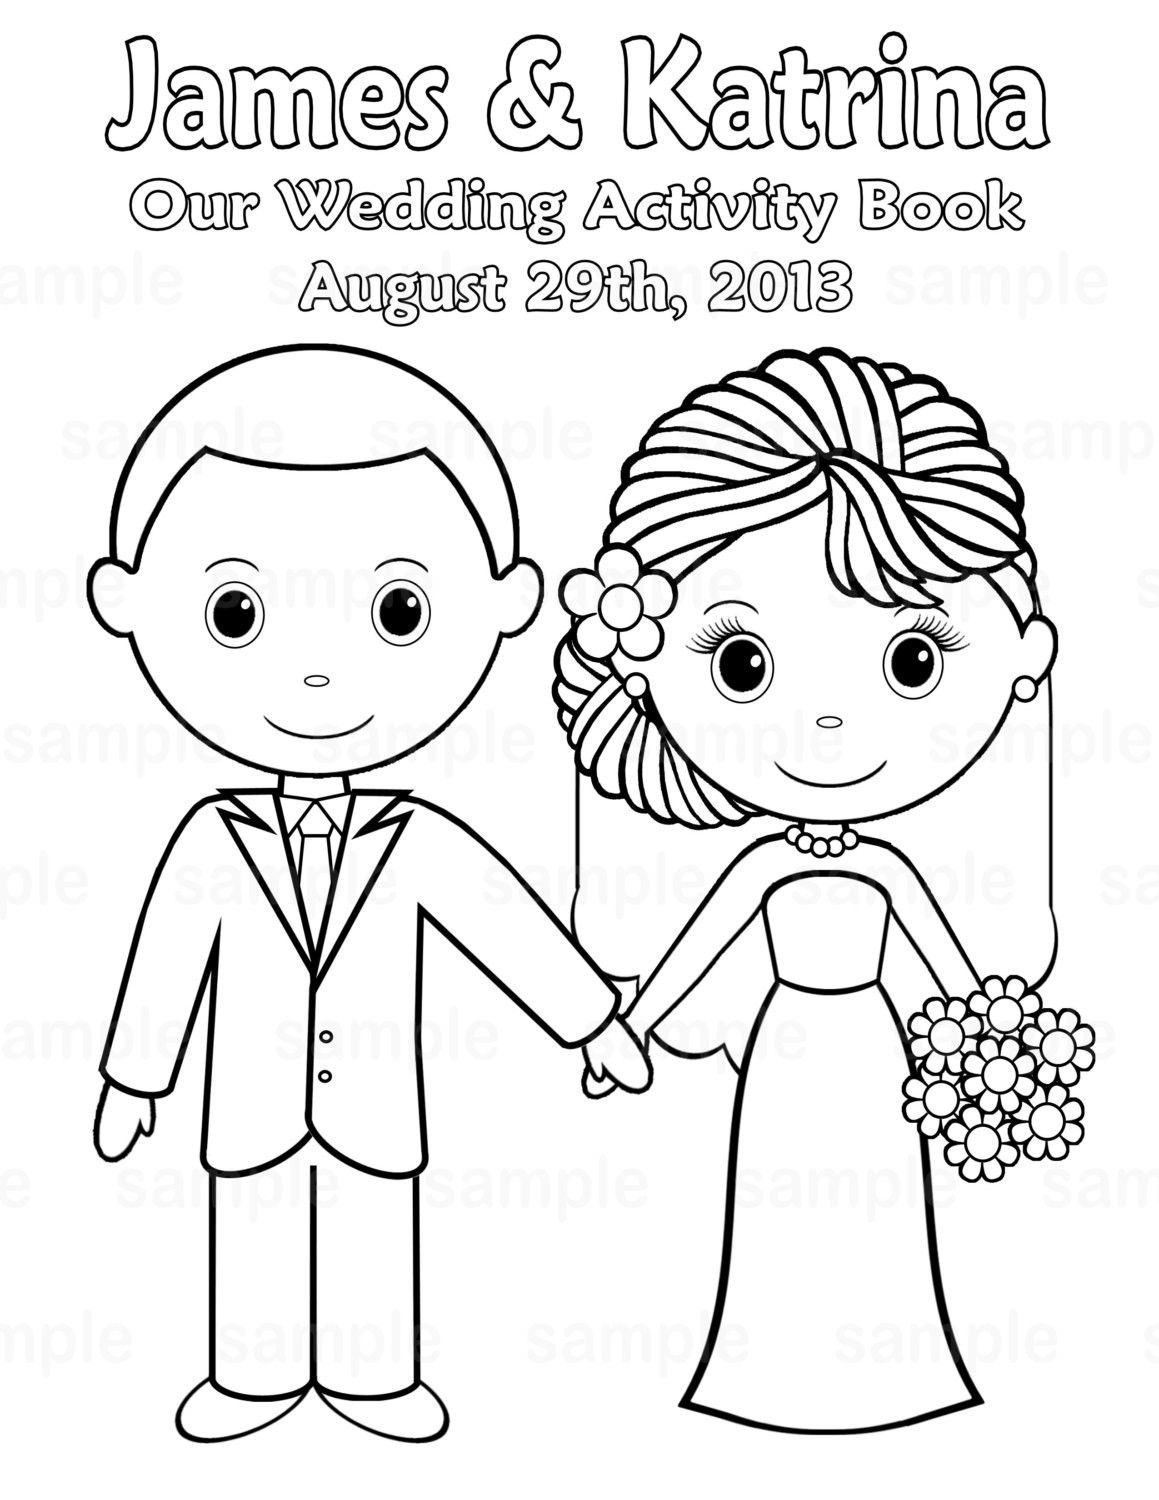 Printable Personalized Wedding Coloring Activity Book Favor Kids X 11 PDF Or JPEG TEMPLATE Via Etsy How Cute To Give At The Reception